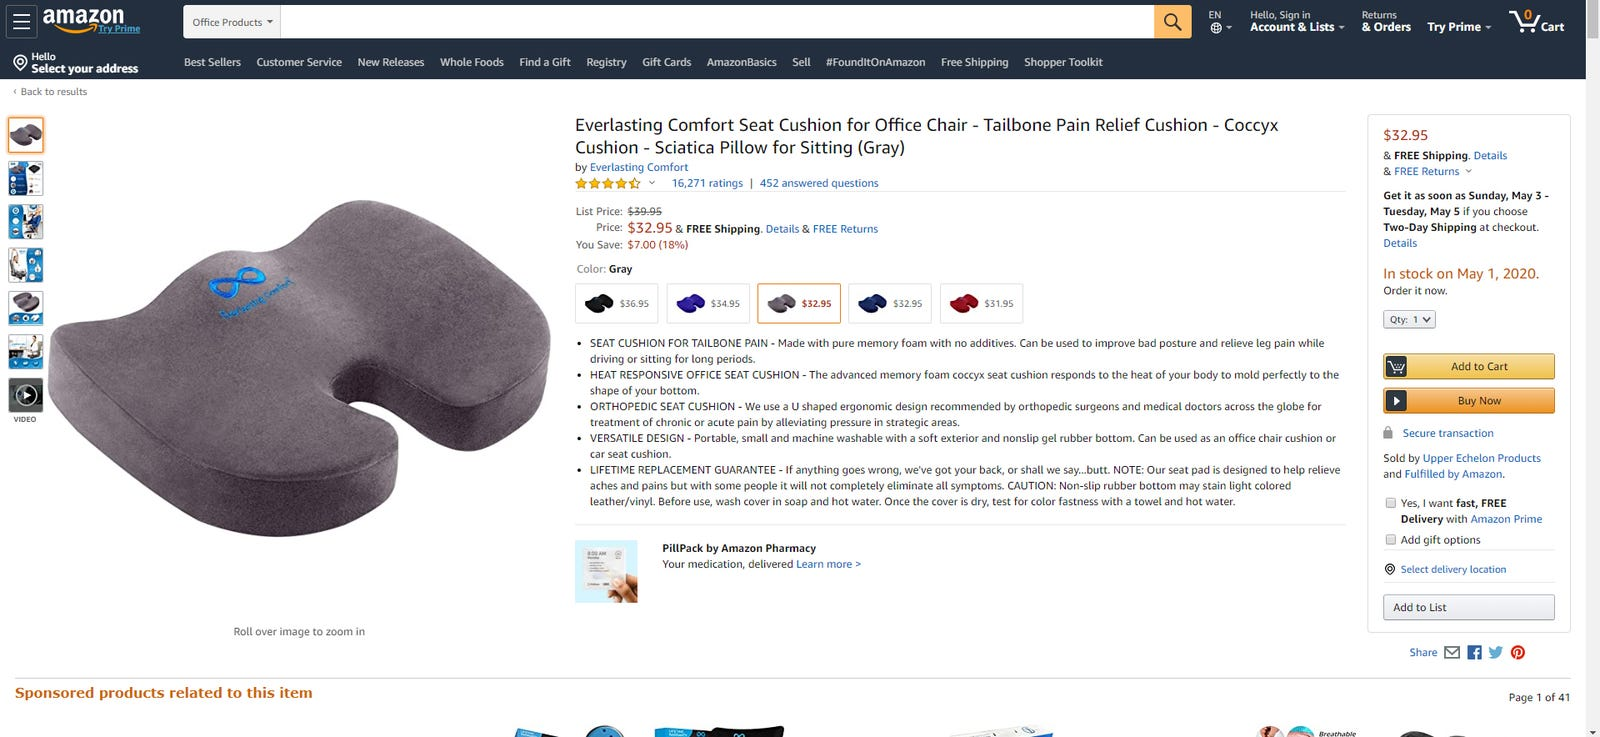 Everlasting Comfort seat cushion from Upper Echelon Products on Amazon.